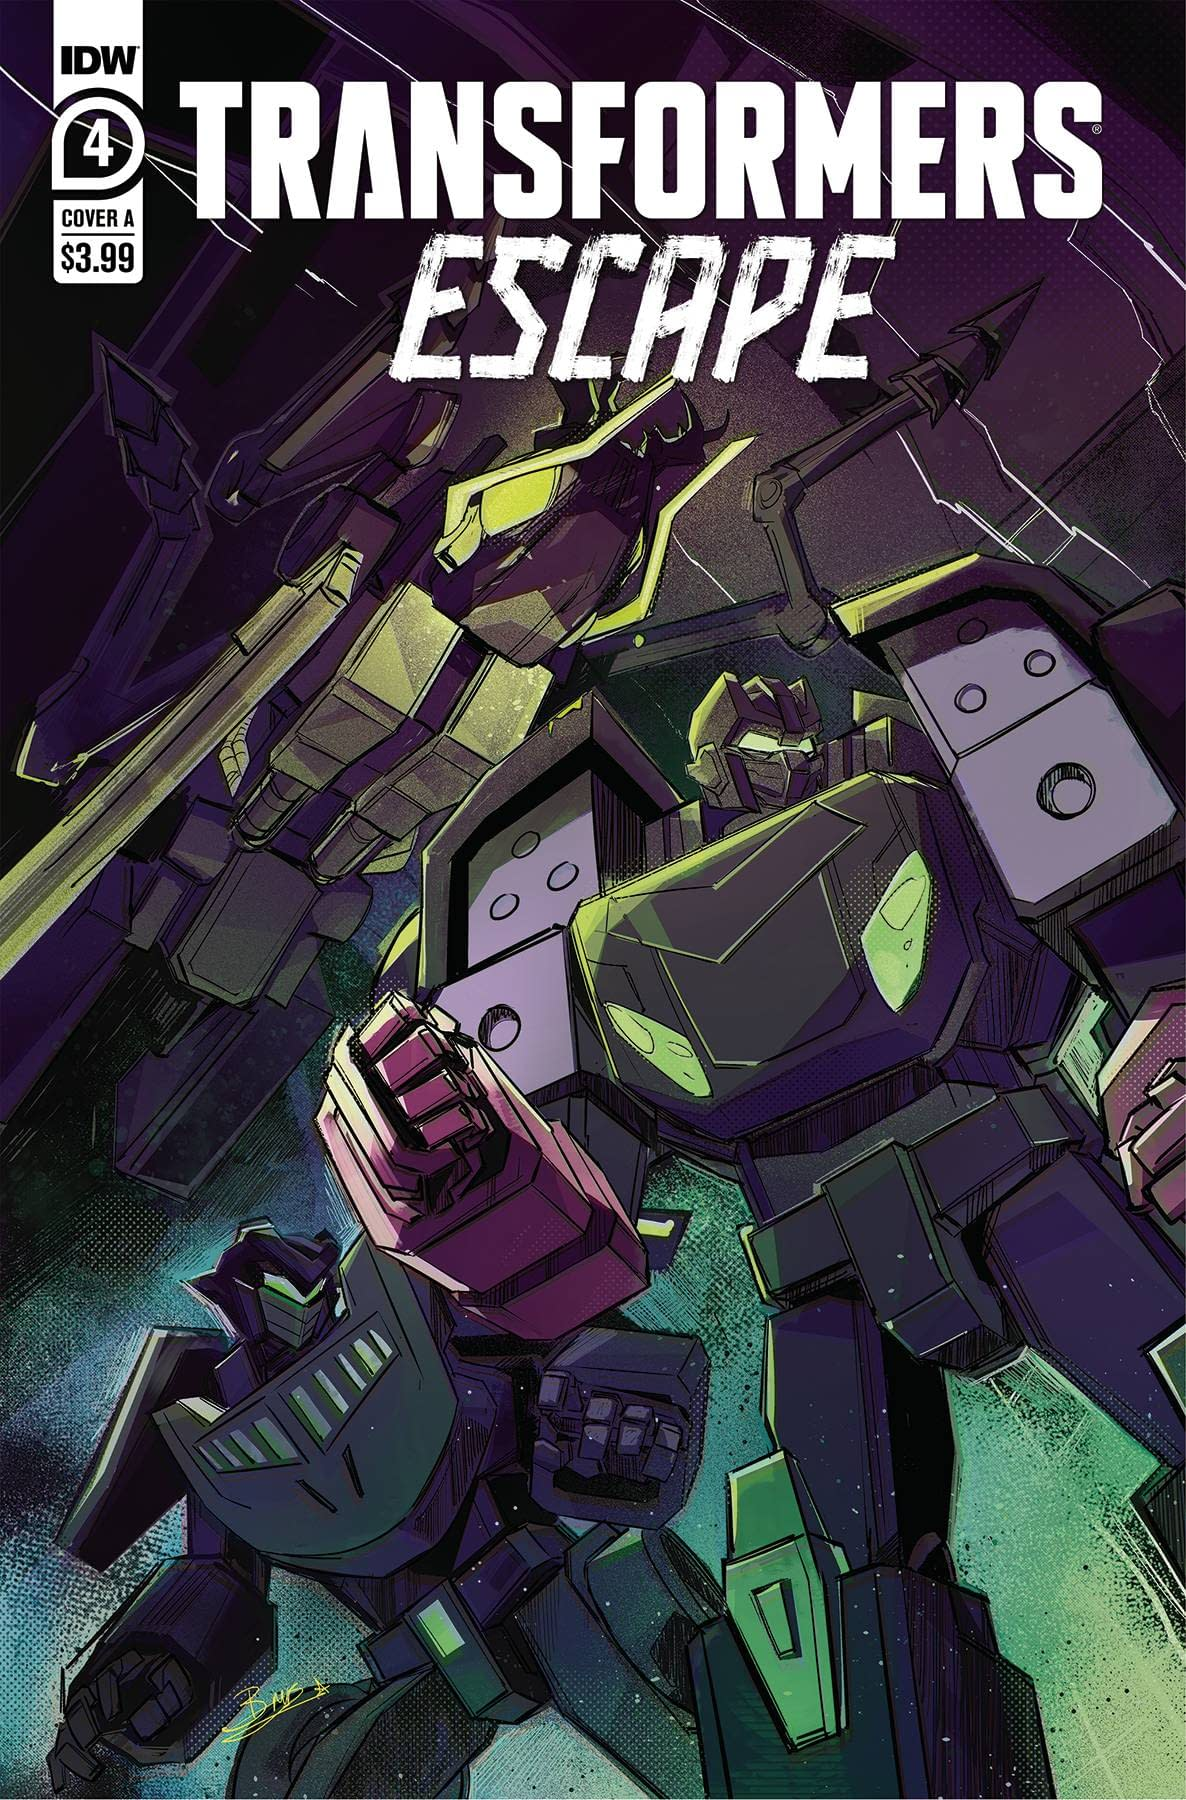 TRANSFORMERS ESCAPE #4 (OF 5) CVR A MCGUIRE-SMITH